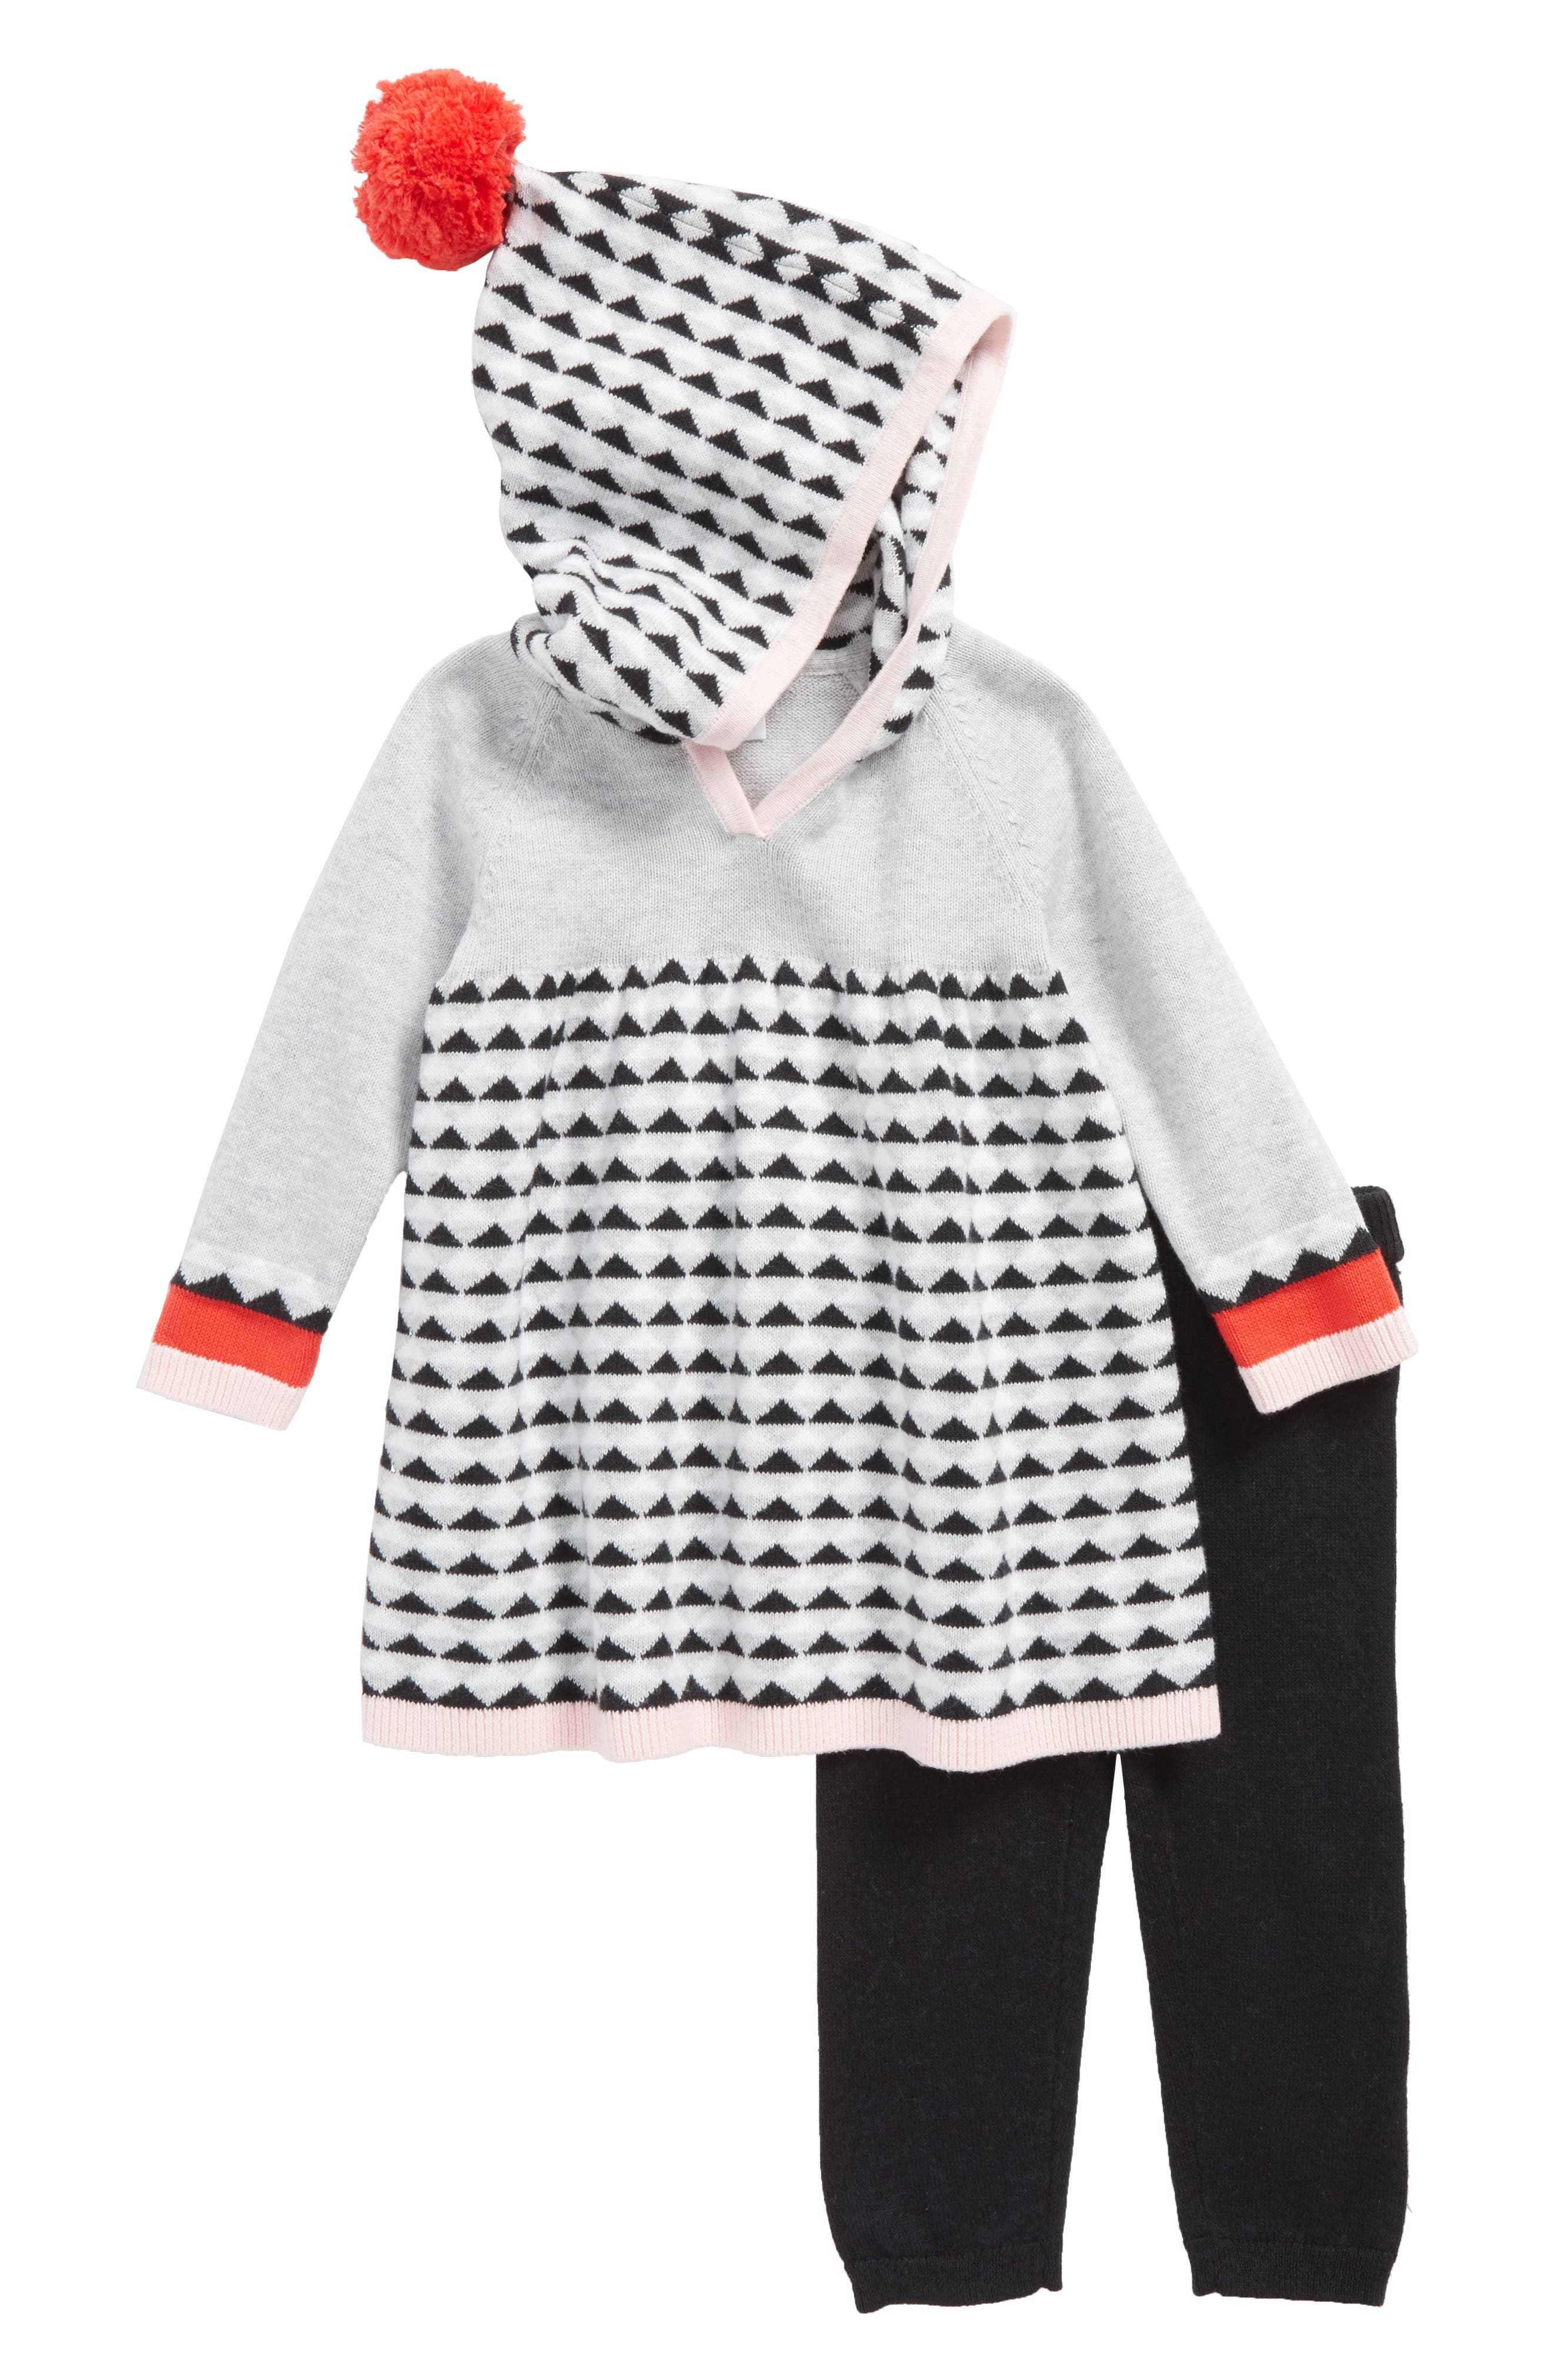 Nordstrom Baby Hooded Sweater Dress & Leggings Set (Baby Girls)